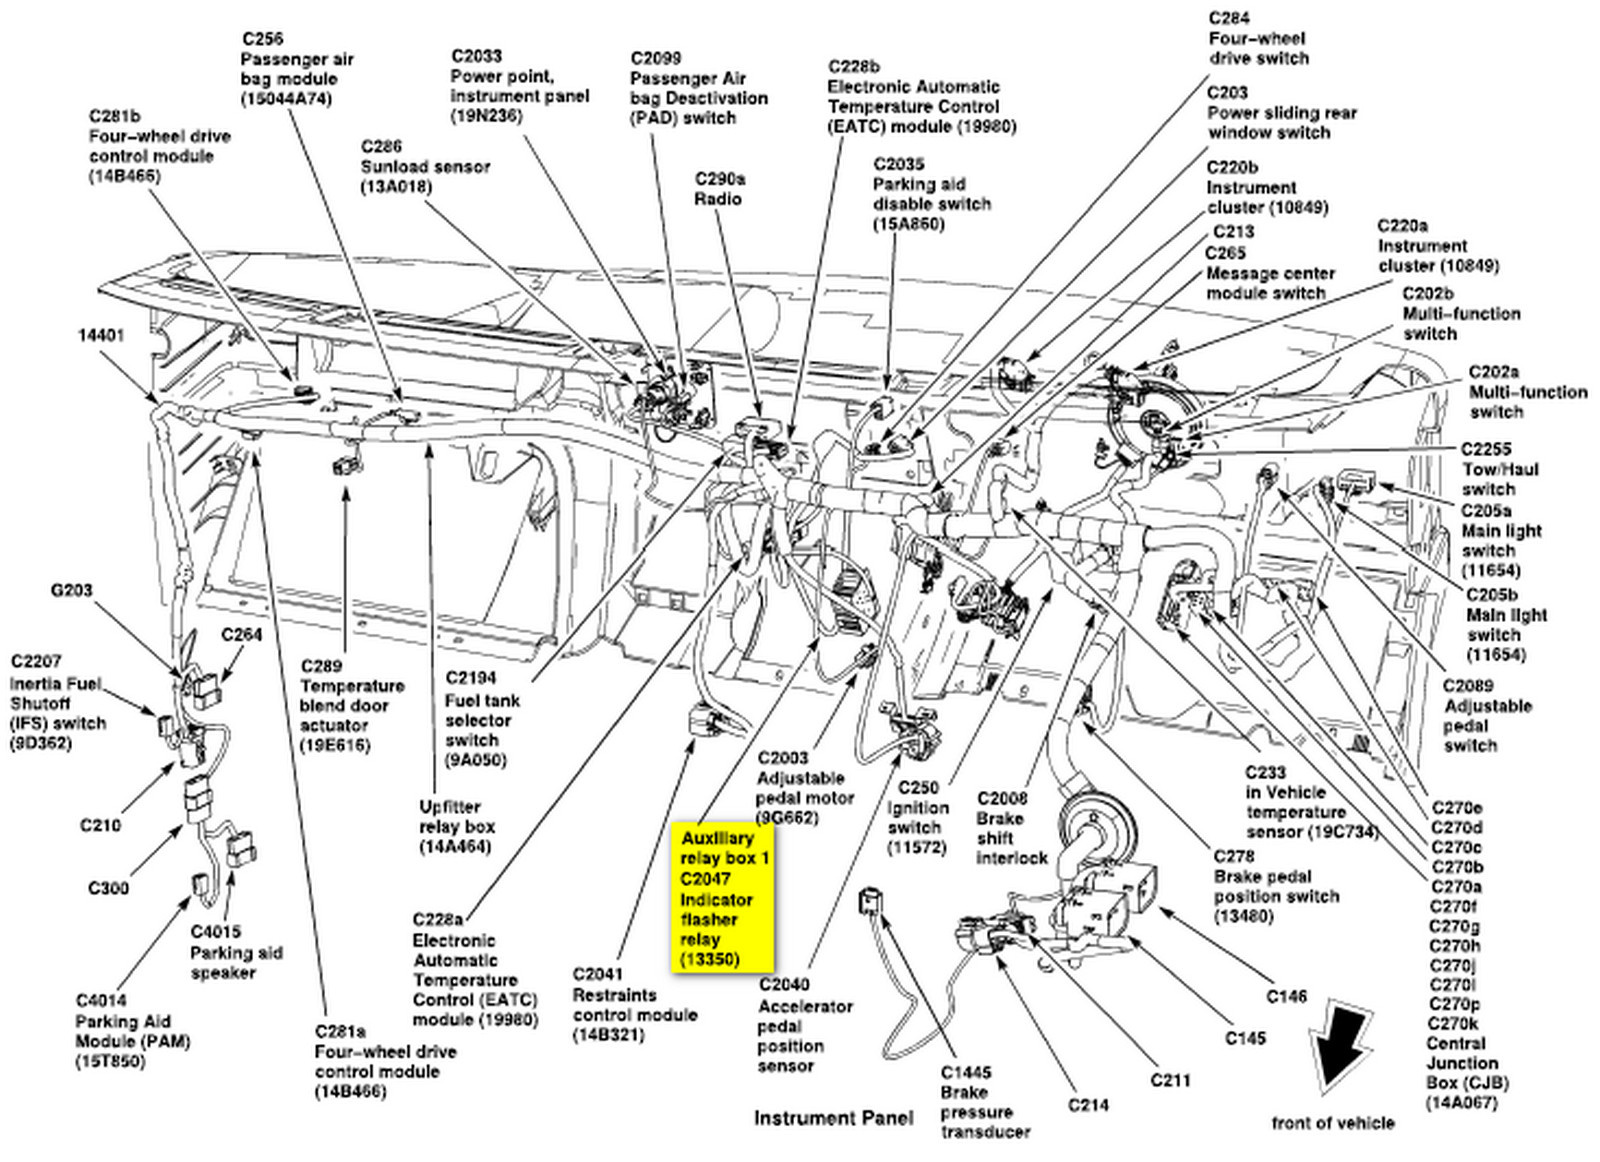 Discussion T60374 ds560387 on ford turn signal wiring diagram 2008 escape